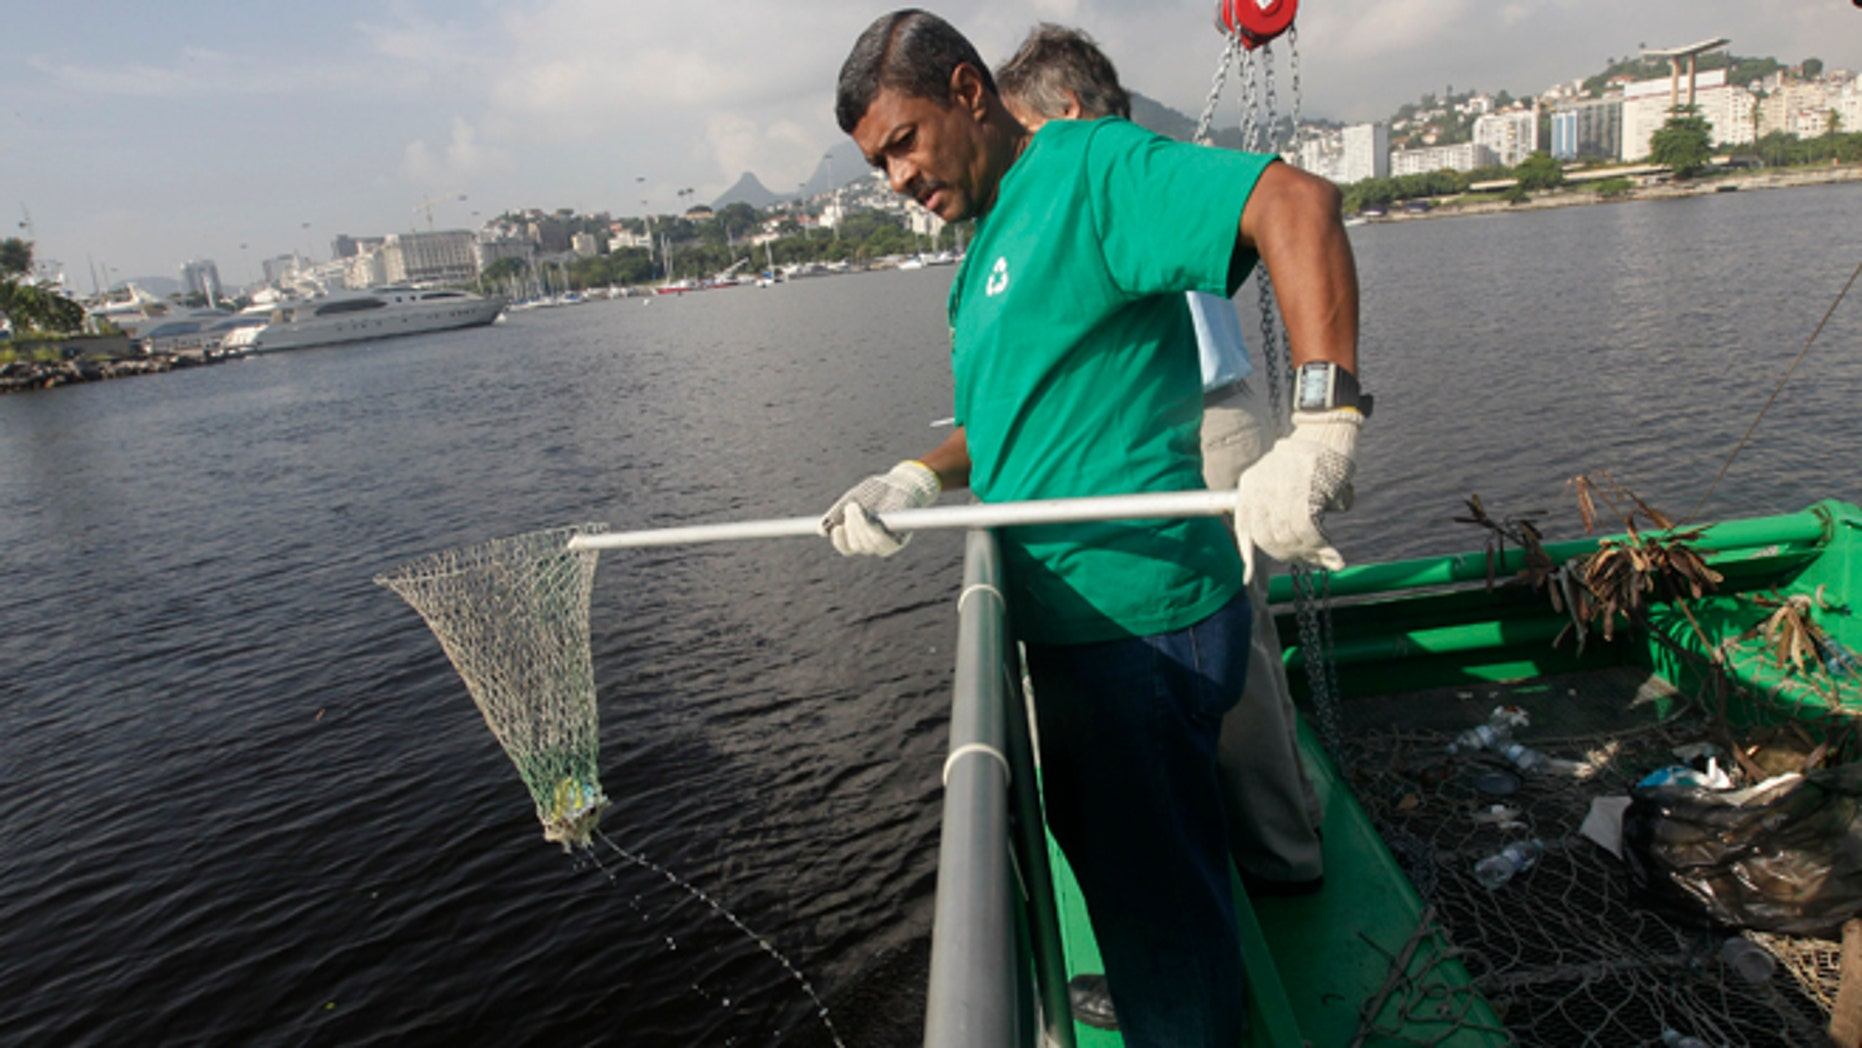 """A worker fishes out trash from a garbage-collecting barge at the Guanabara bay, in Rio de Janeiro, Brazil, Monday, Jan. 6, 2014. The green barge plies the polluted waters of Rio de Janeiroâs Guanabara Bay alongside wooden fishing boats but its catch consists not of grouper or swordfish but rather plastic bags, empty soda bottles and a discarded toilet seat. The barge is one of three so-called """"eco-boats,"""" floating garbage vessels that are a key part of authorities' pledge to clean up Rioâs devastated Guanabara Bay before the city â and the waterway itself â plays host to the 2016 Olympic games. (AP Photo/Silvia Izquierdo)"""